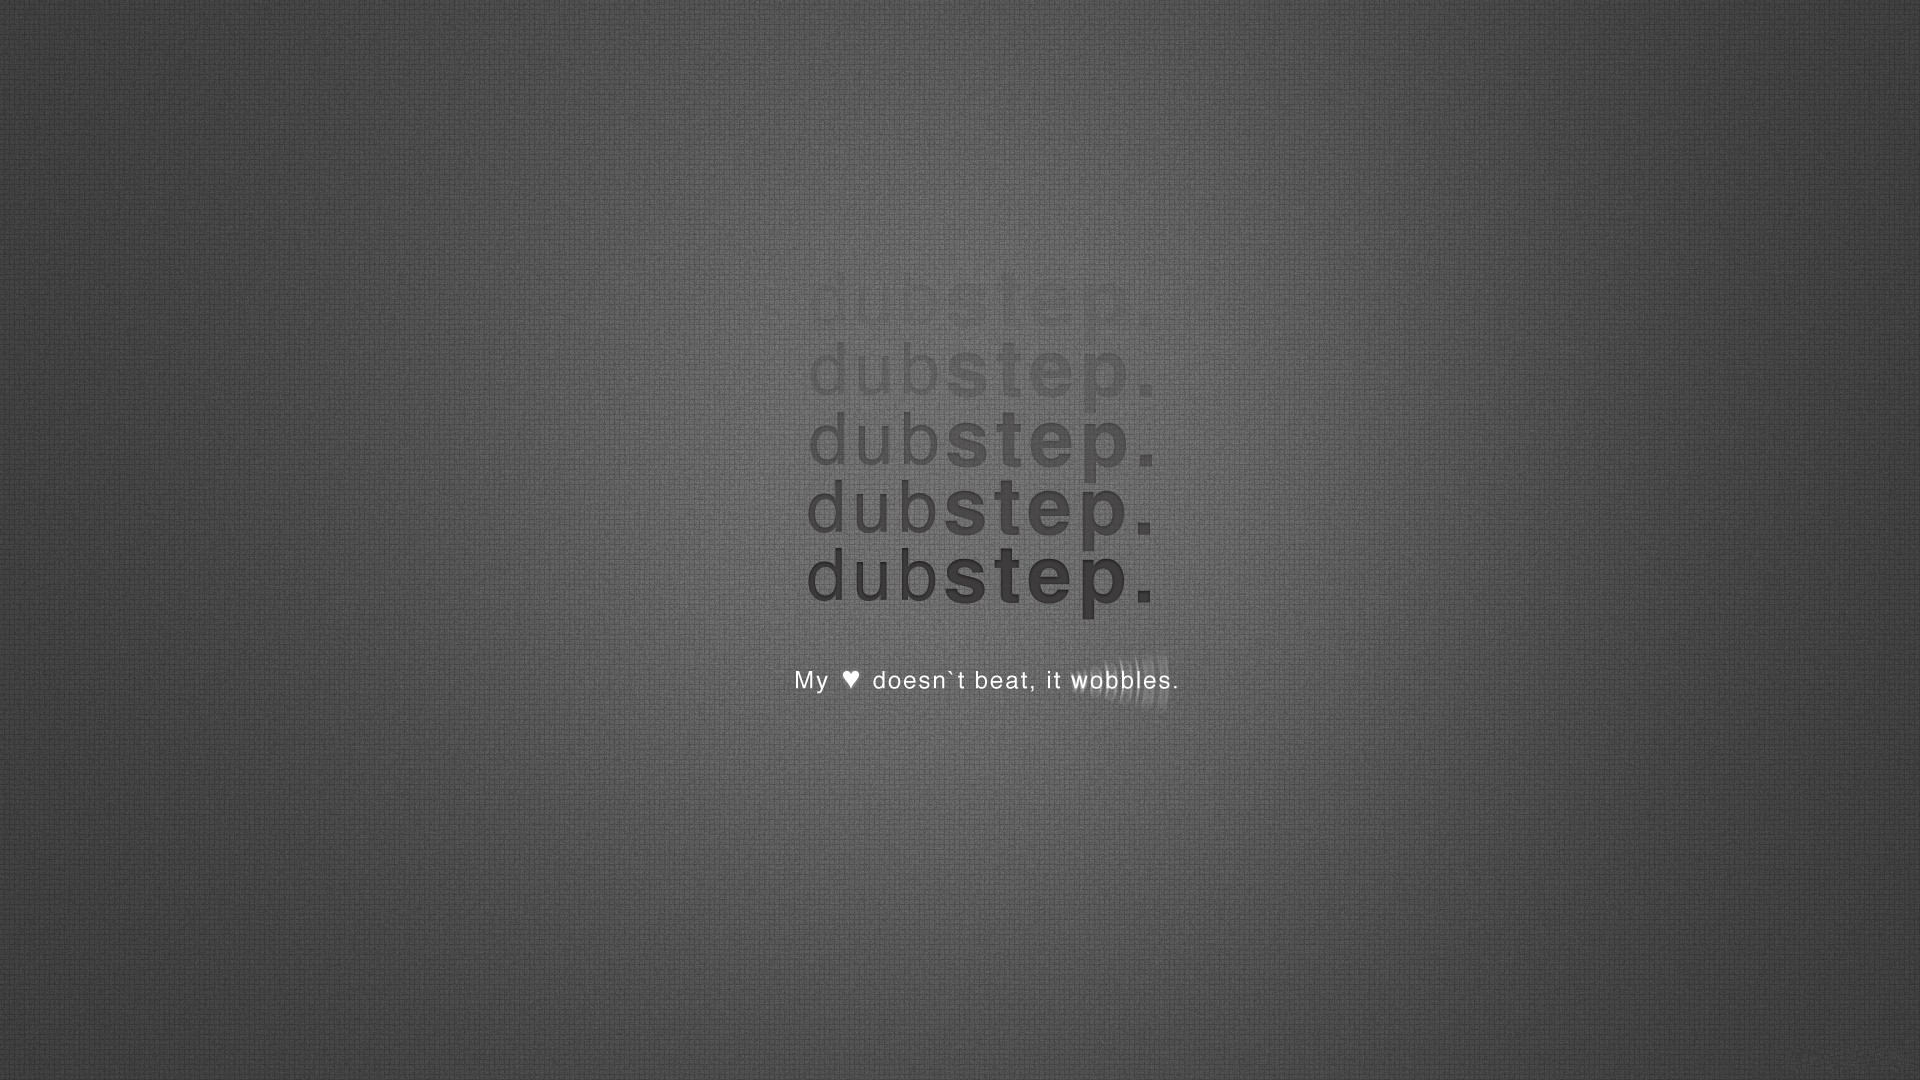 Dubstep hd music 4k wallpapers images backgrounds photos and dubstep hdg voltagebd Gallery